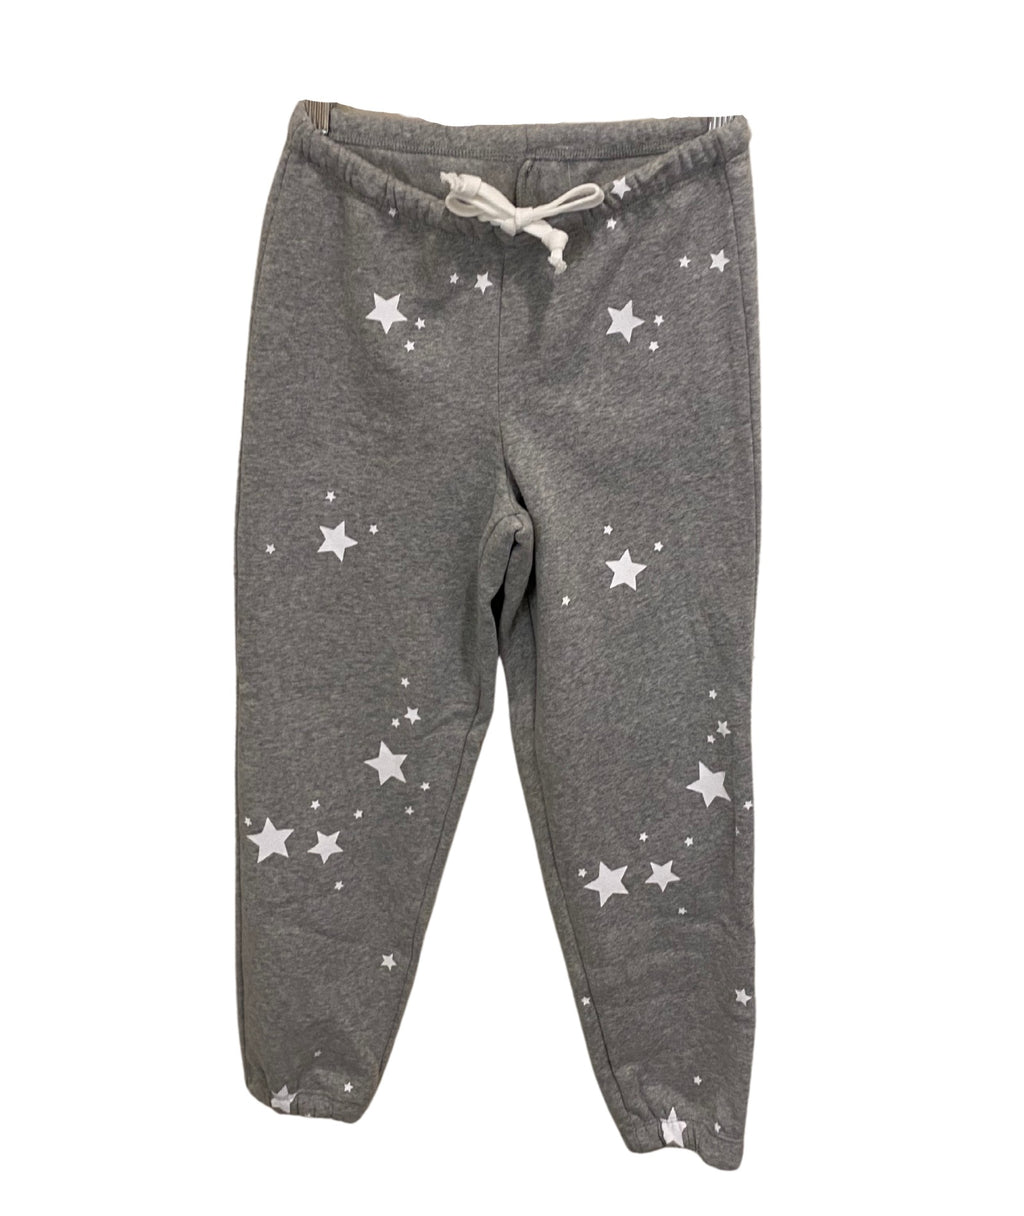 Katie J NYC Girls Faith Grey Star Sweatpants